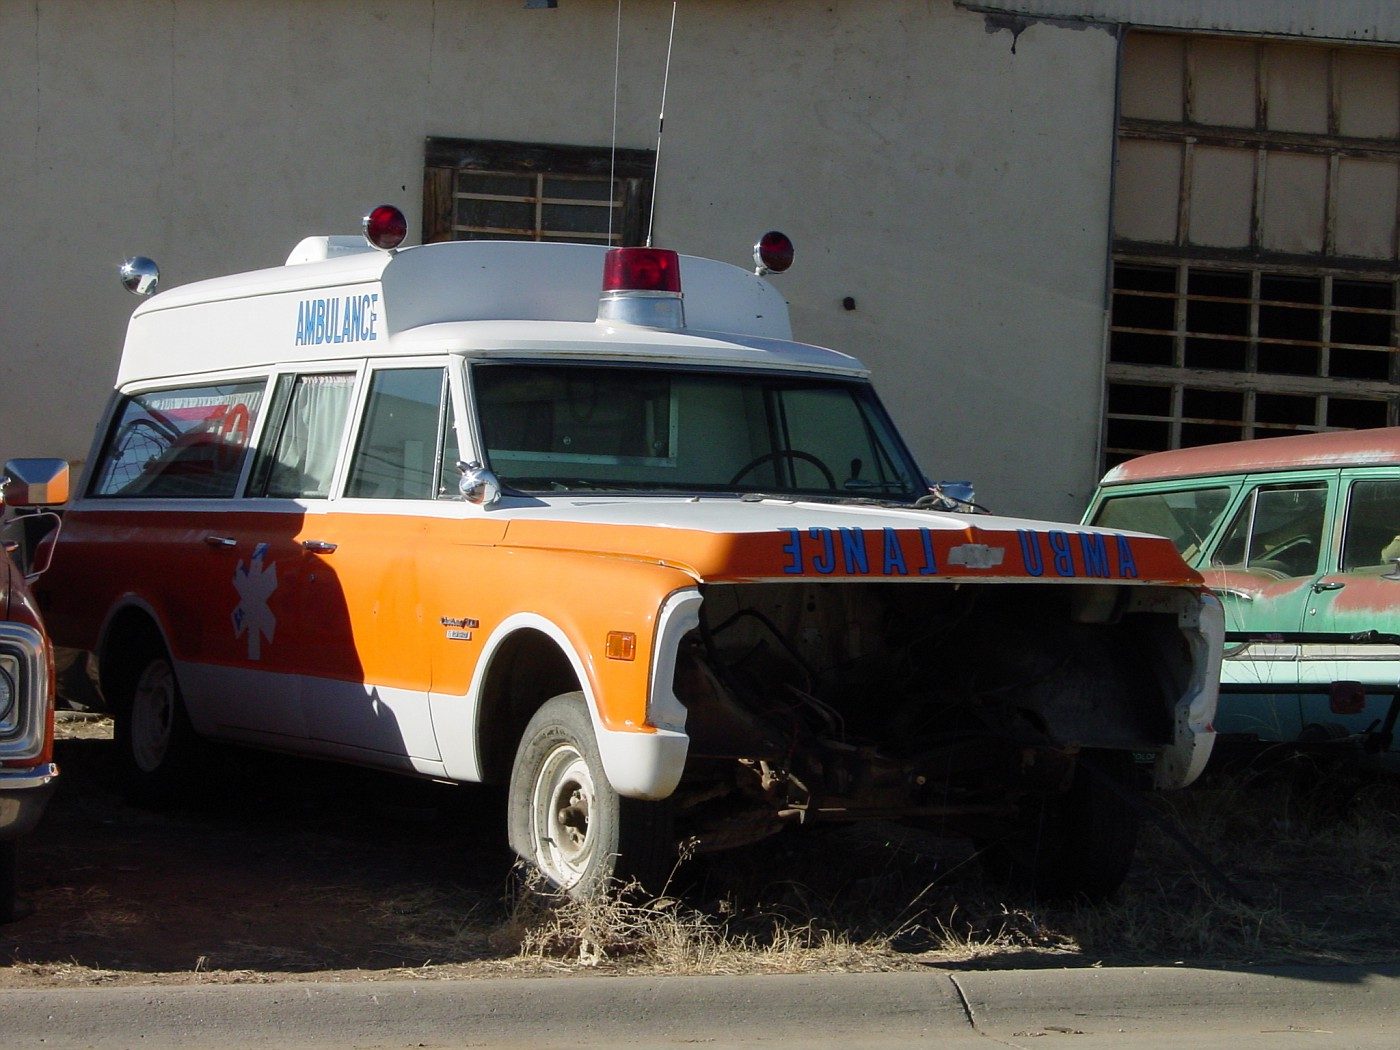 CO - Chevy ambulance (1969-1970) in a Colorado boneyard